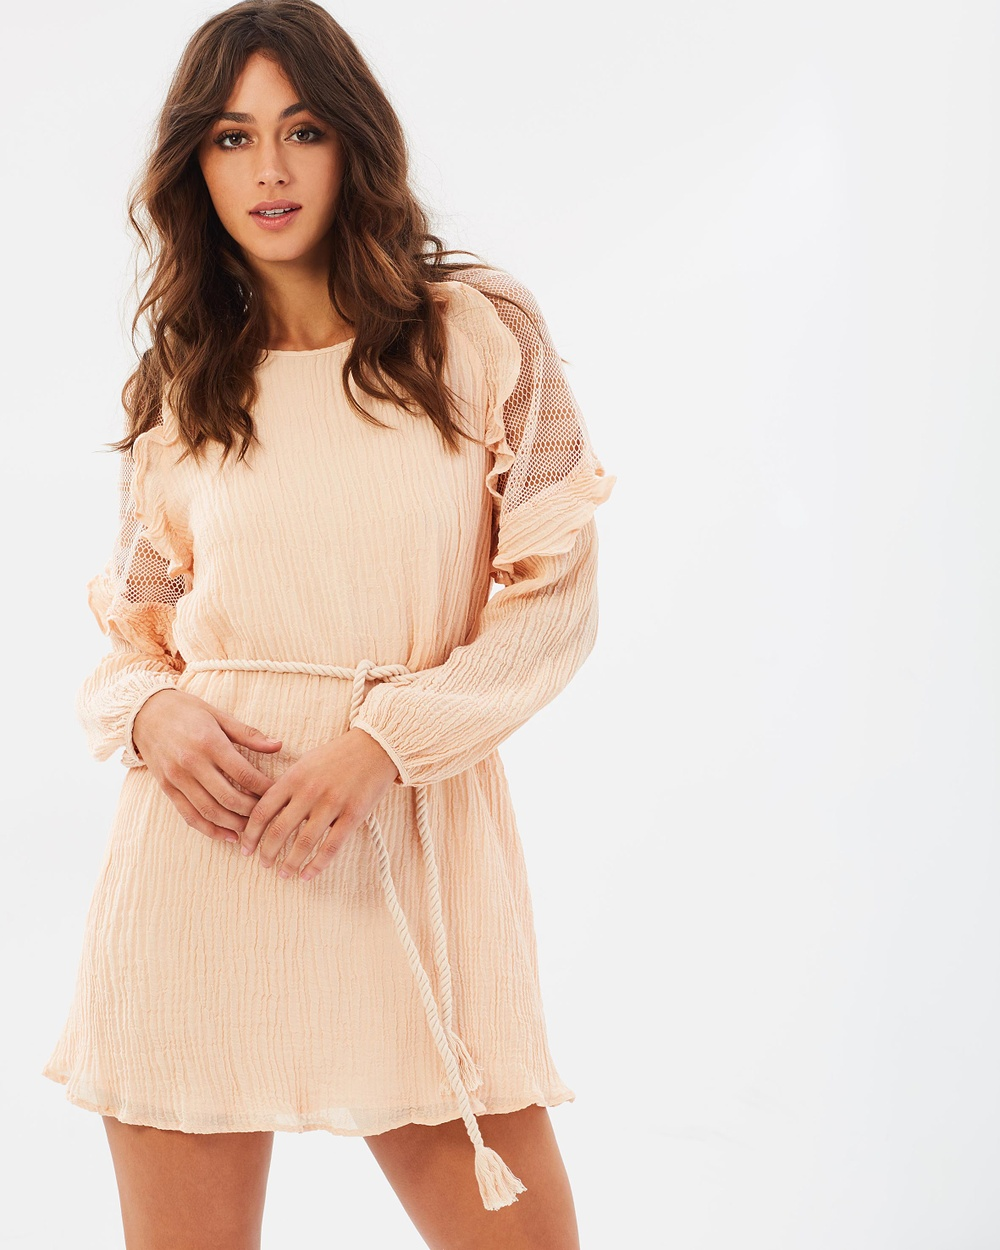 Stevie May Sunday Afternoon Long Sleeve Mini Dress Dresses Dusty Pink Sunday Afternoon Long Sleeve Mini Dress